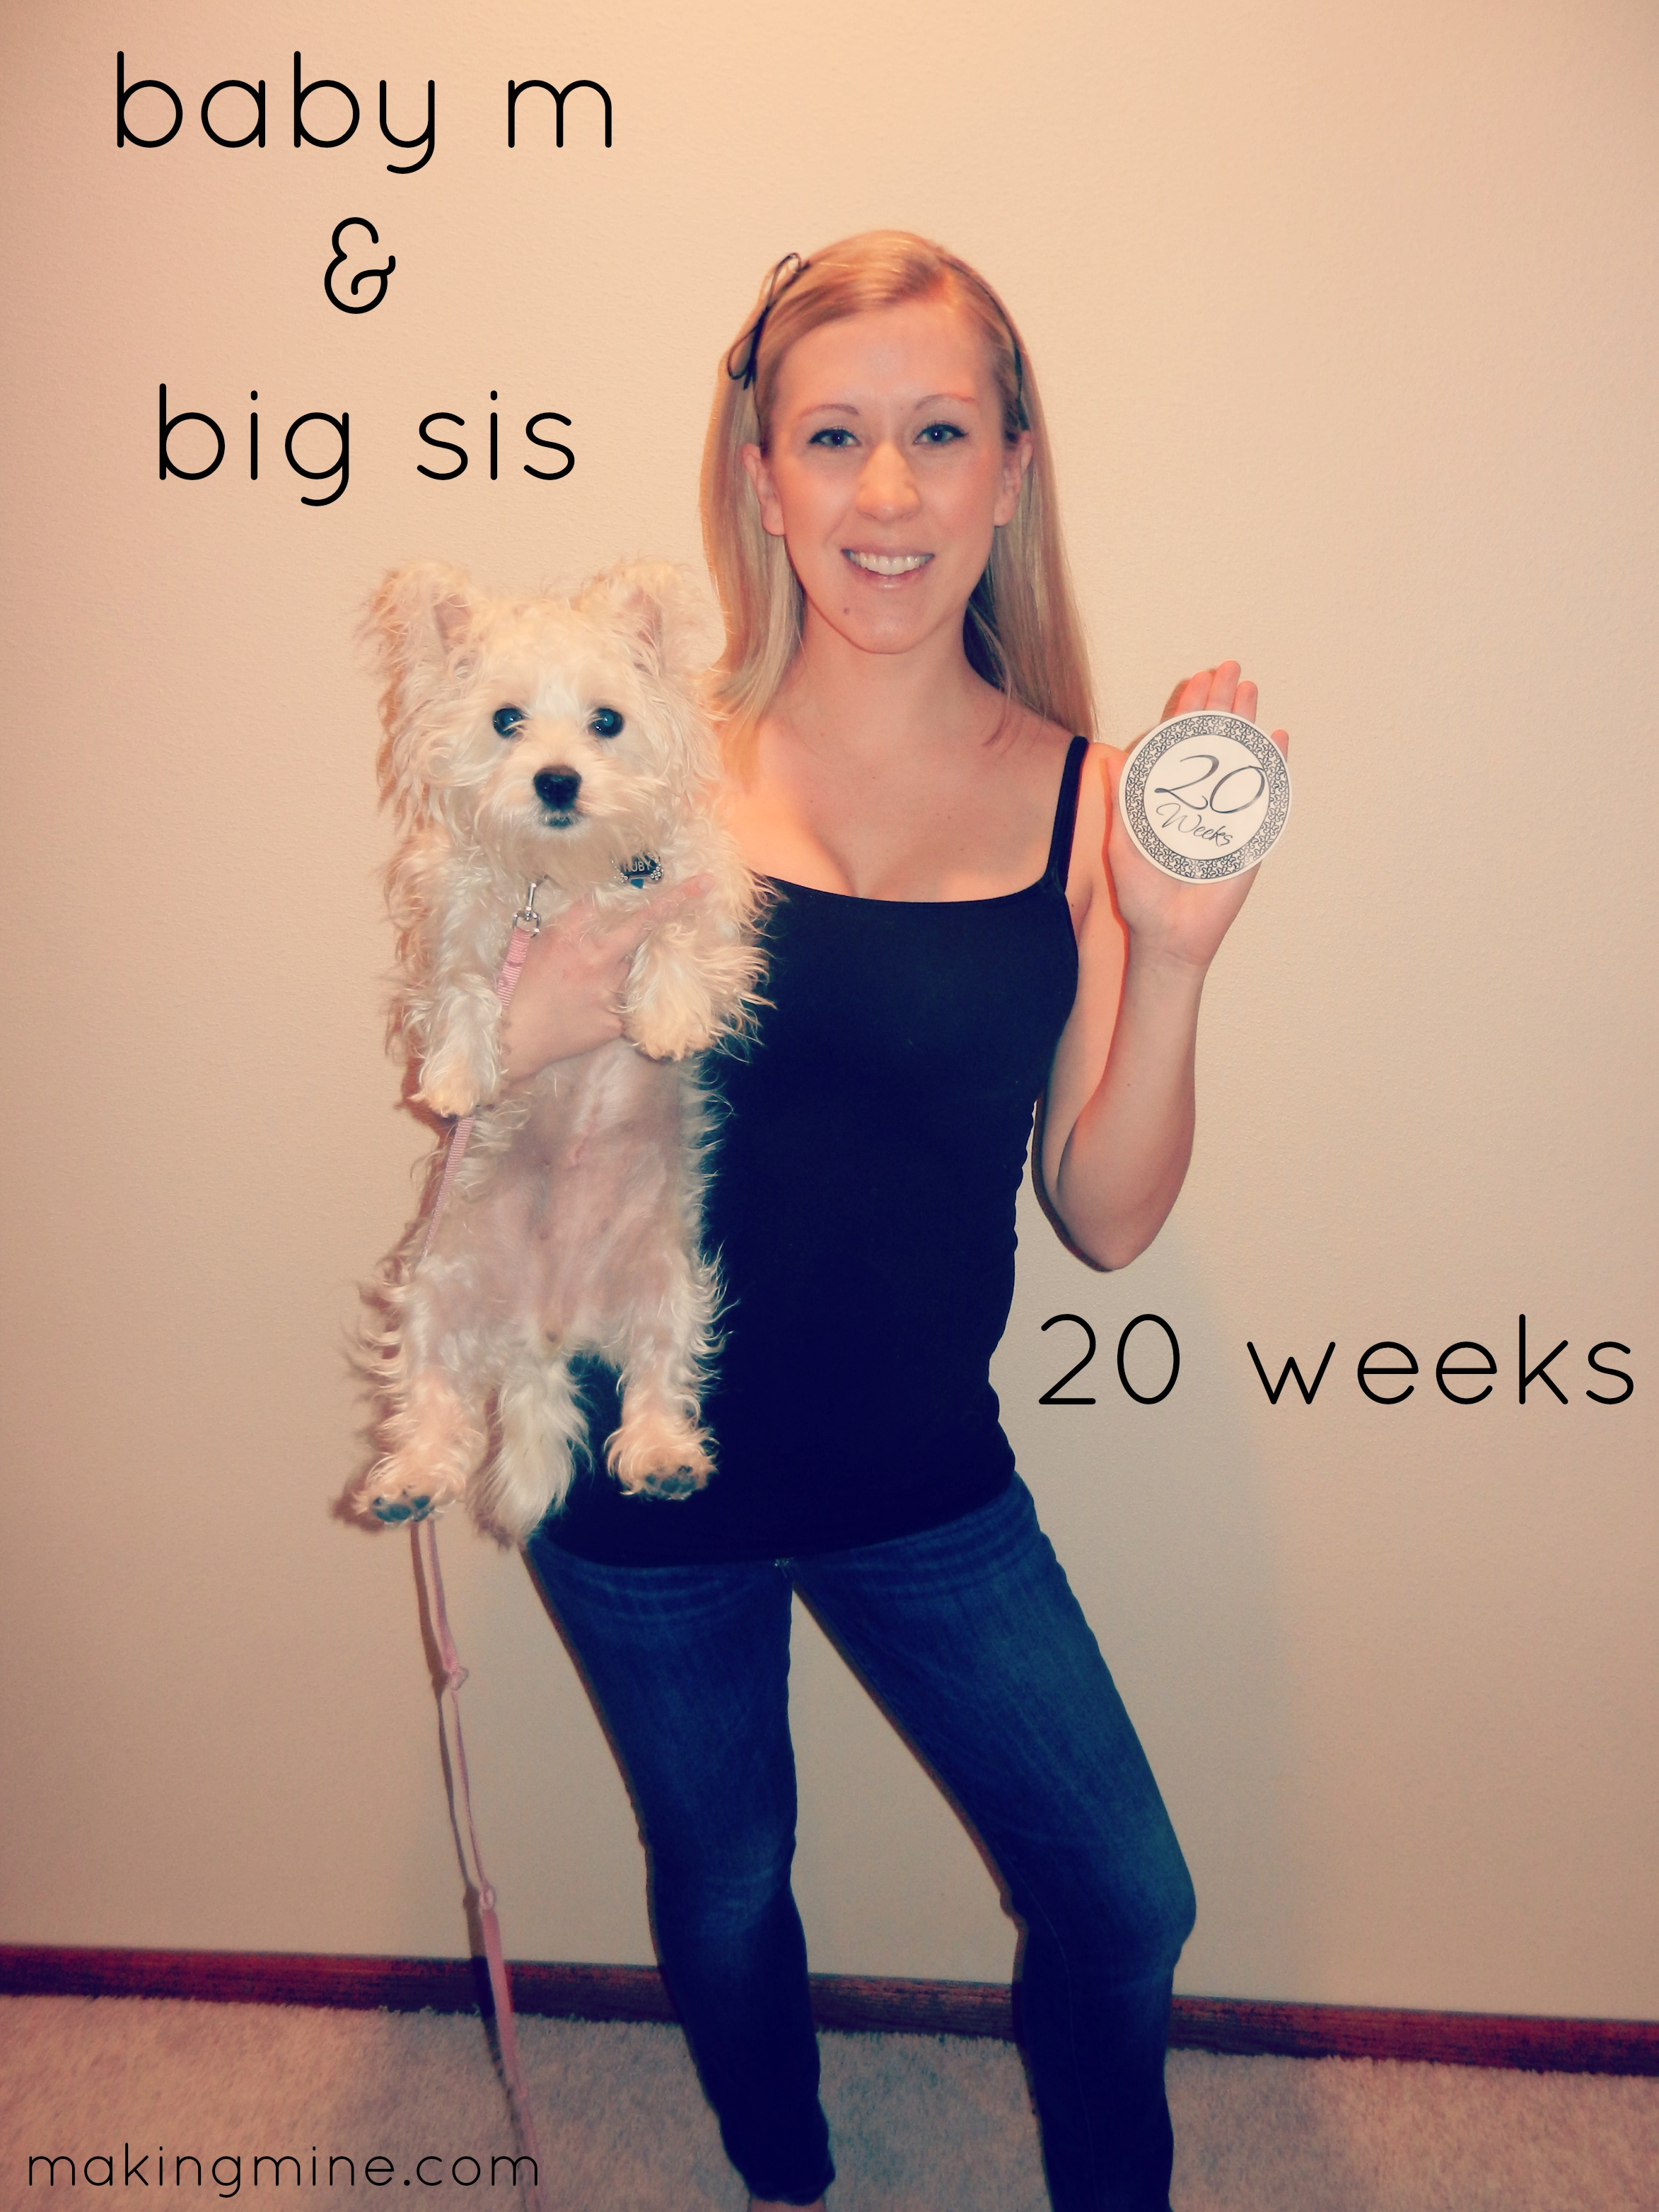 weeks pregnant with baby m